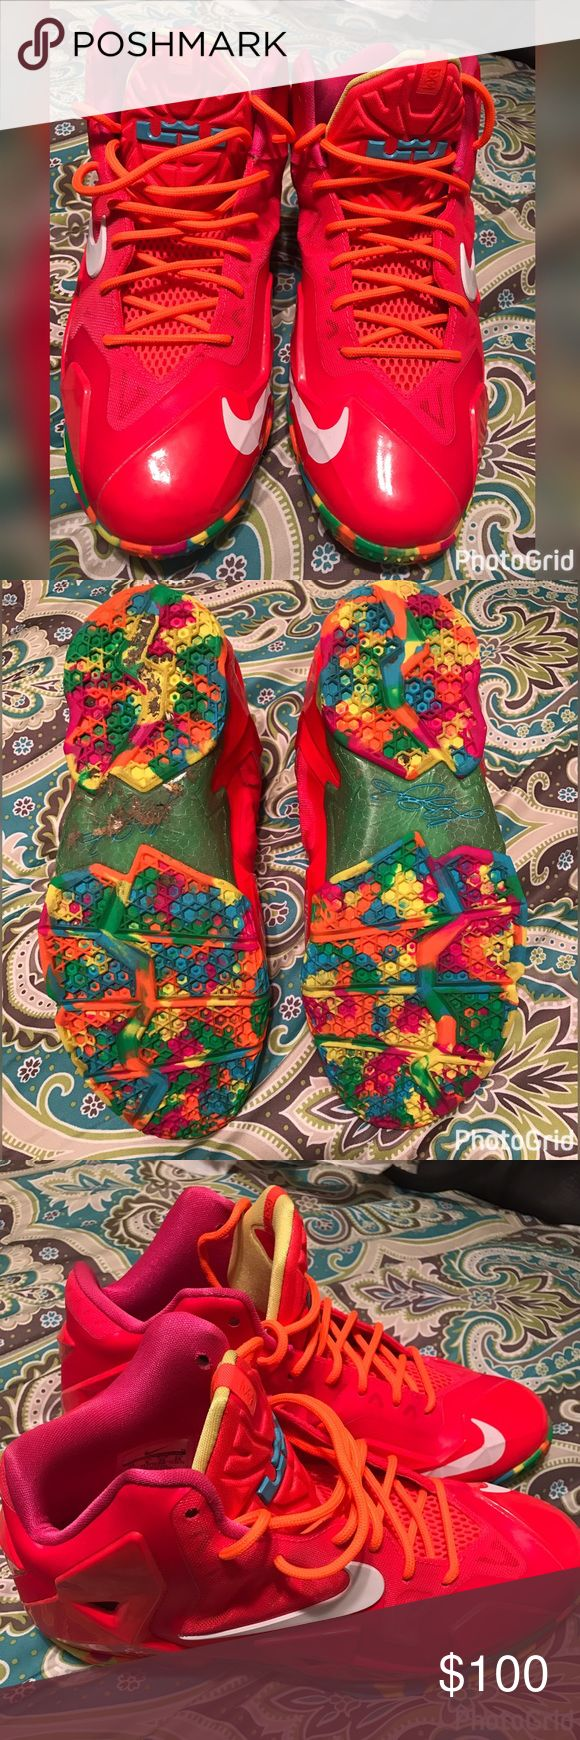 """Lebron James 11's """"Fruity Pebbles"""" Youth Lebron James 11's  Fruity Pebbles Youth Limited Edition EUC! Barley worn, cleaning out my son's shoe closet. Super fly! 🙅🏼No Trades 🤦🏼♀️ No Holds! Happy 🎉Poshing! Nike Shoes"""